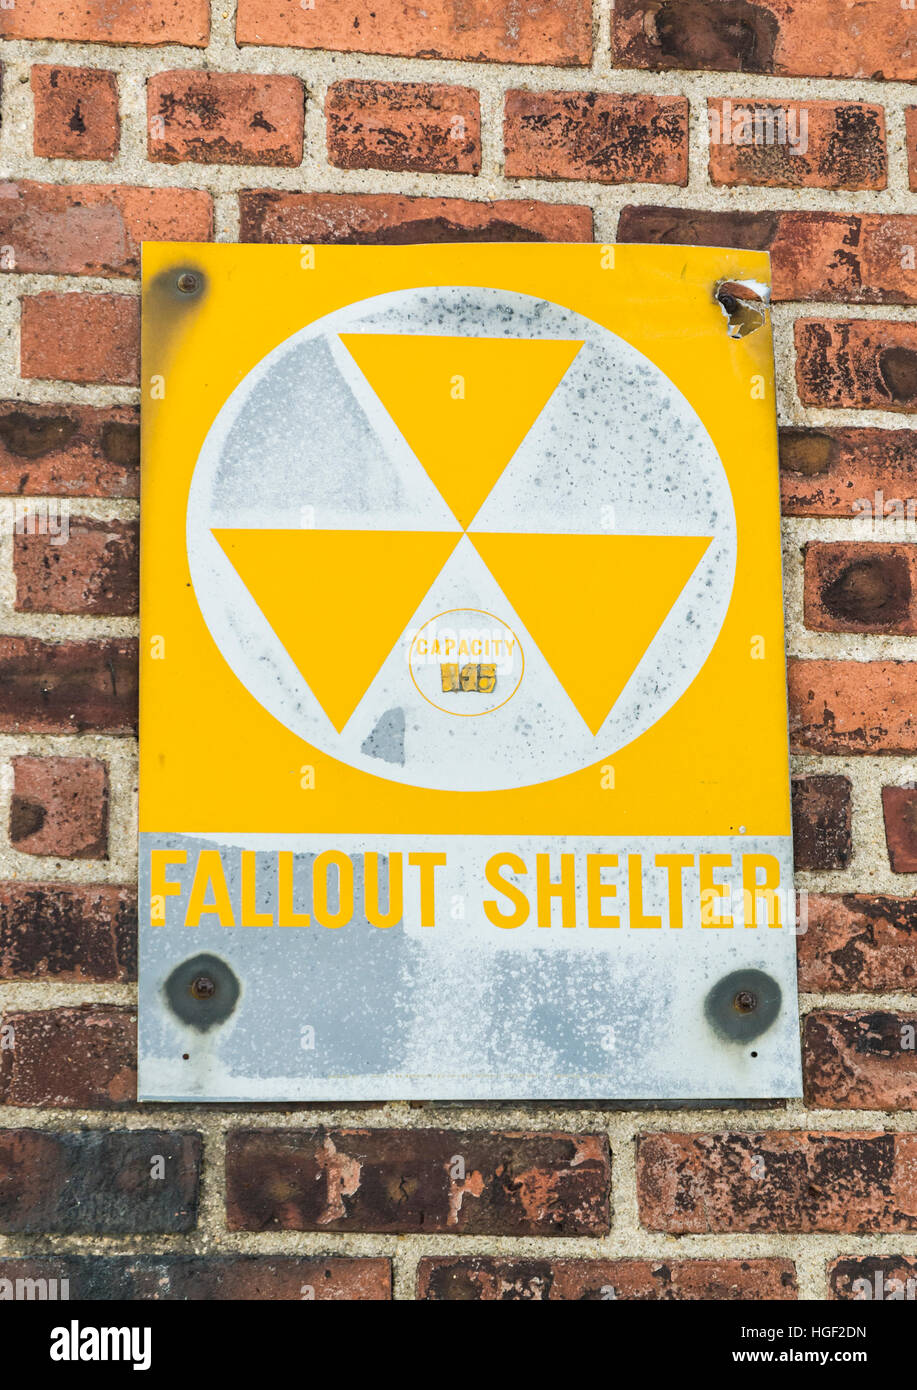 Yellow nuclear radioactive fallout shelter sign on a brick wall, USA - Stock Image